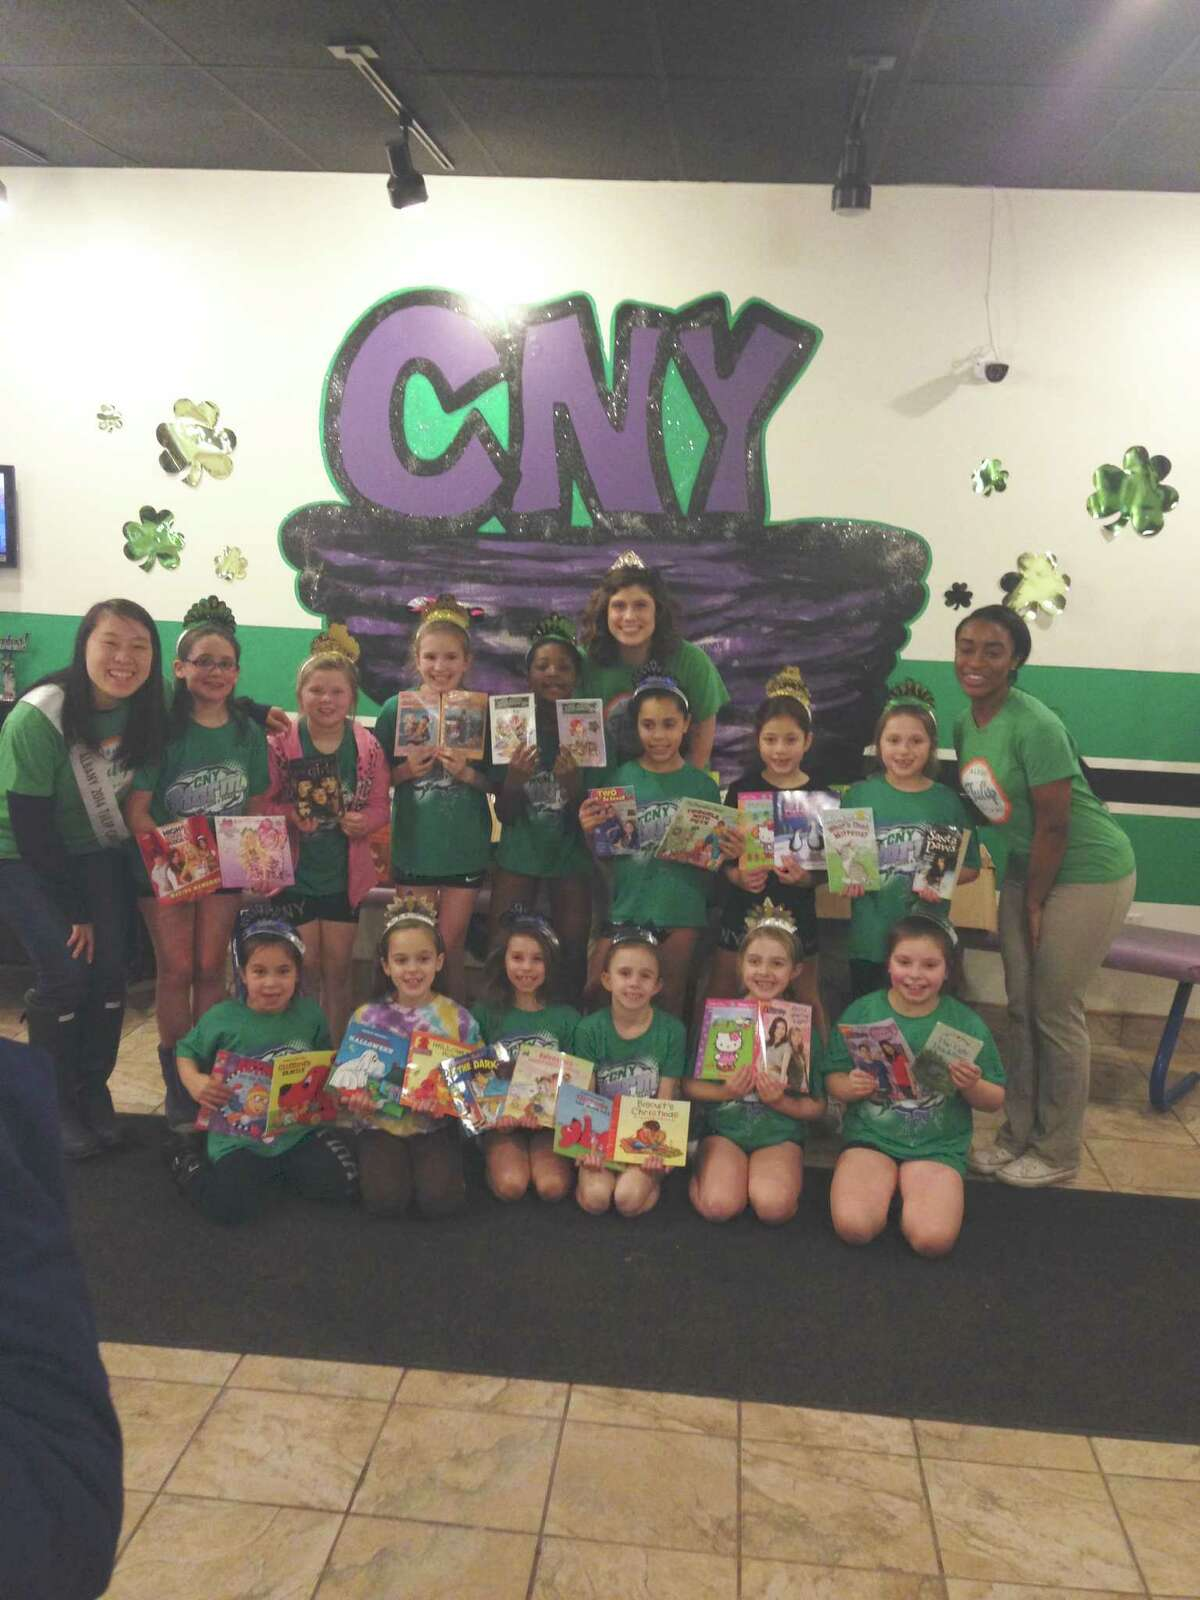 CNY Storm All Star in Albany hosted a book drive by one of its cheer teams, Breeze. The girls set up boxes and collected books that were donated to the Albany Tulip Queen, Caitlin Whelan, and her court for their literacy campaign. A grand total of 532 books were collected in a few short weeks. (Tara Hulett)